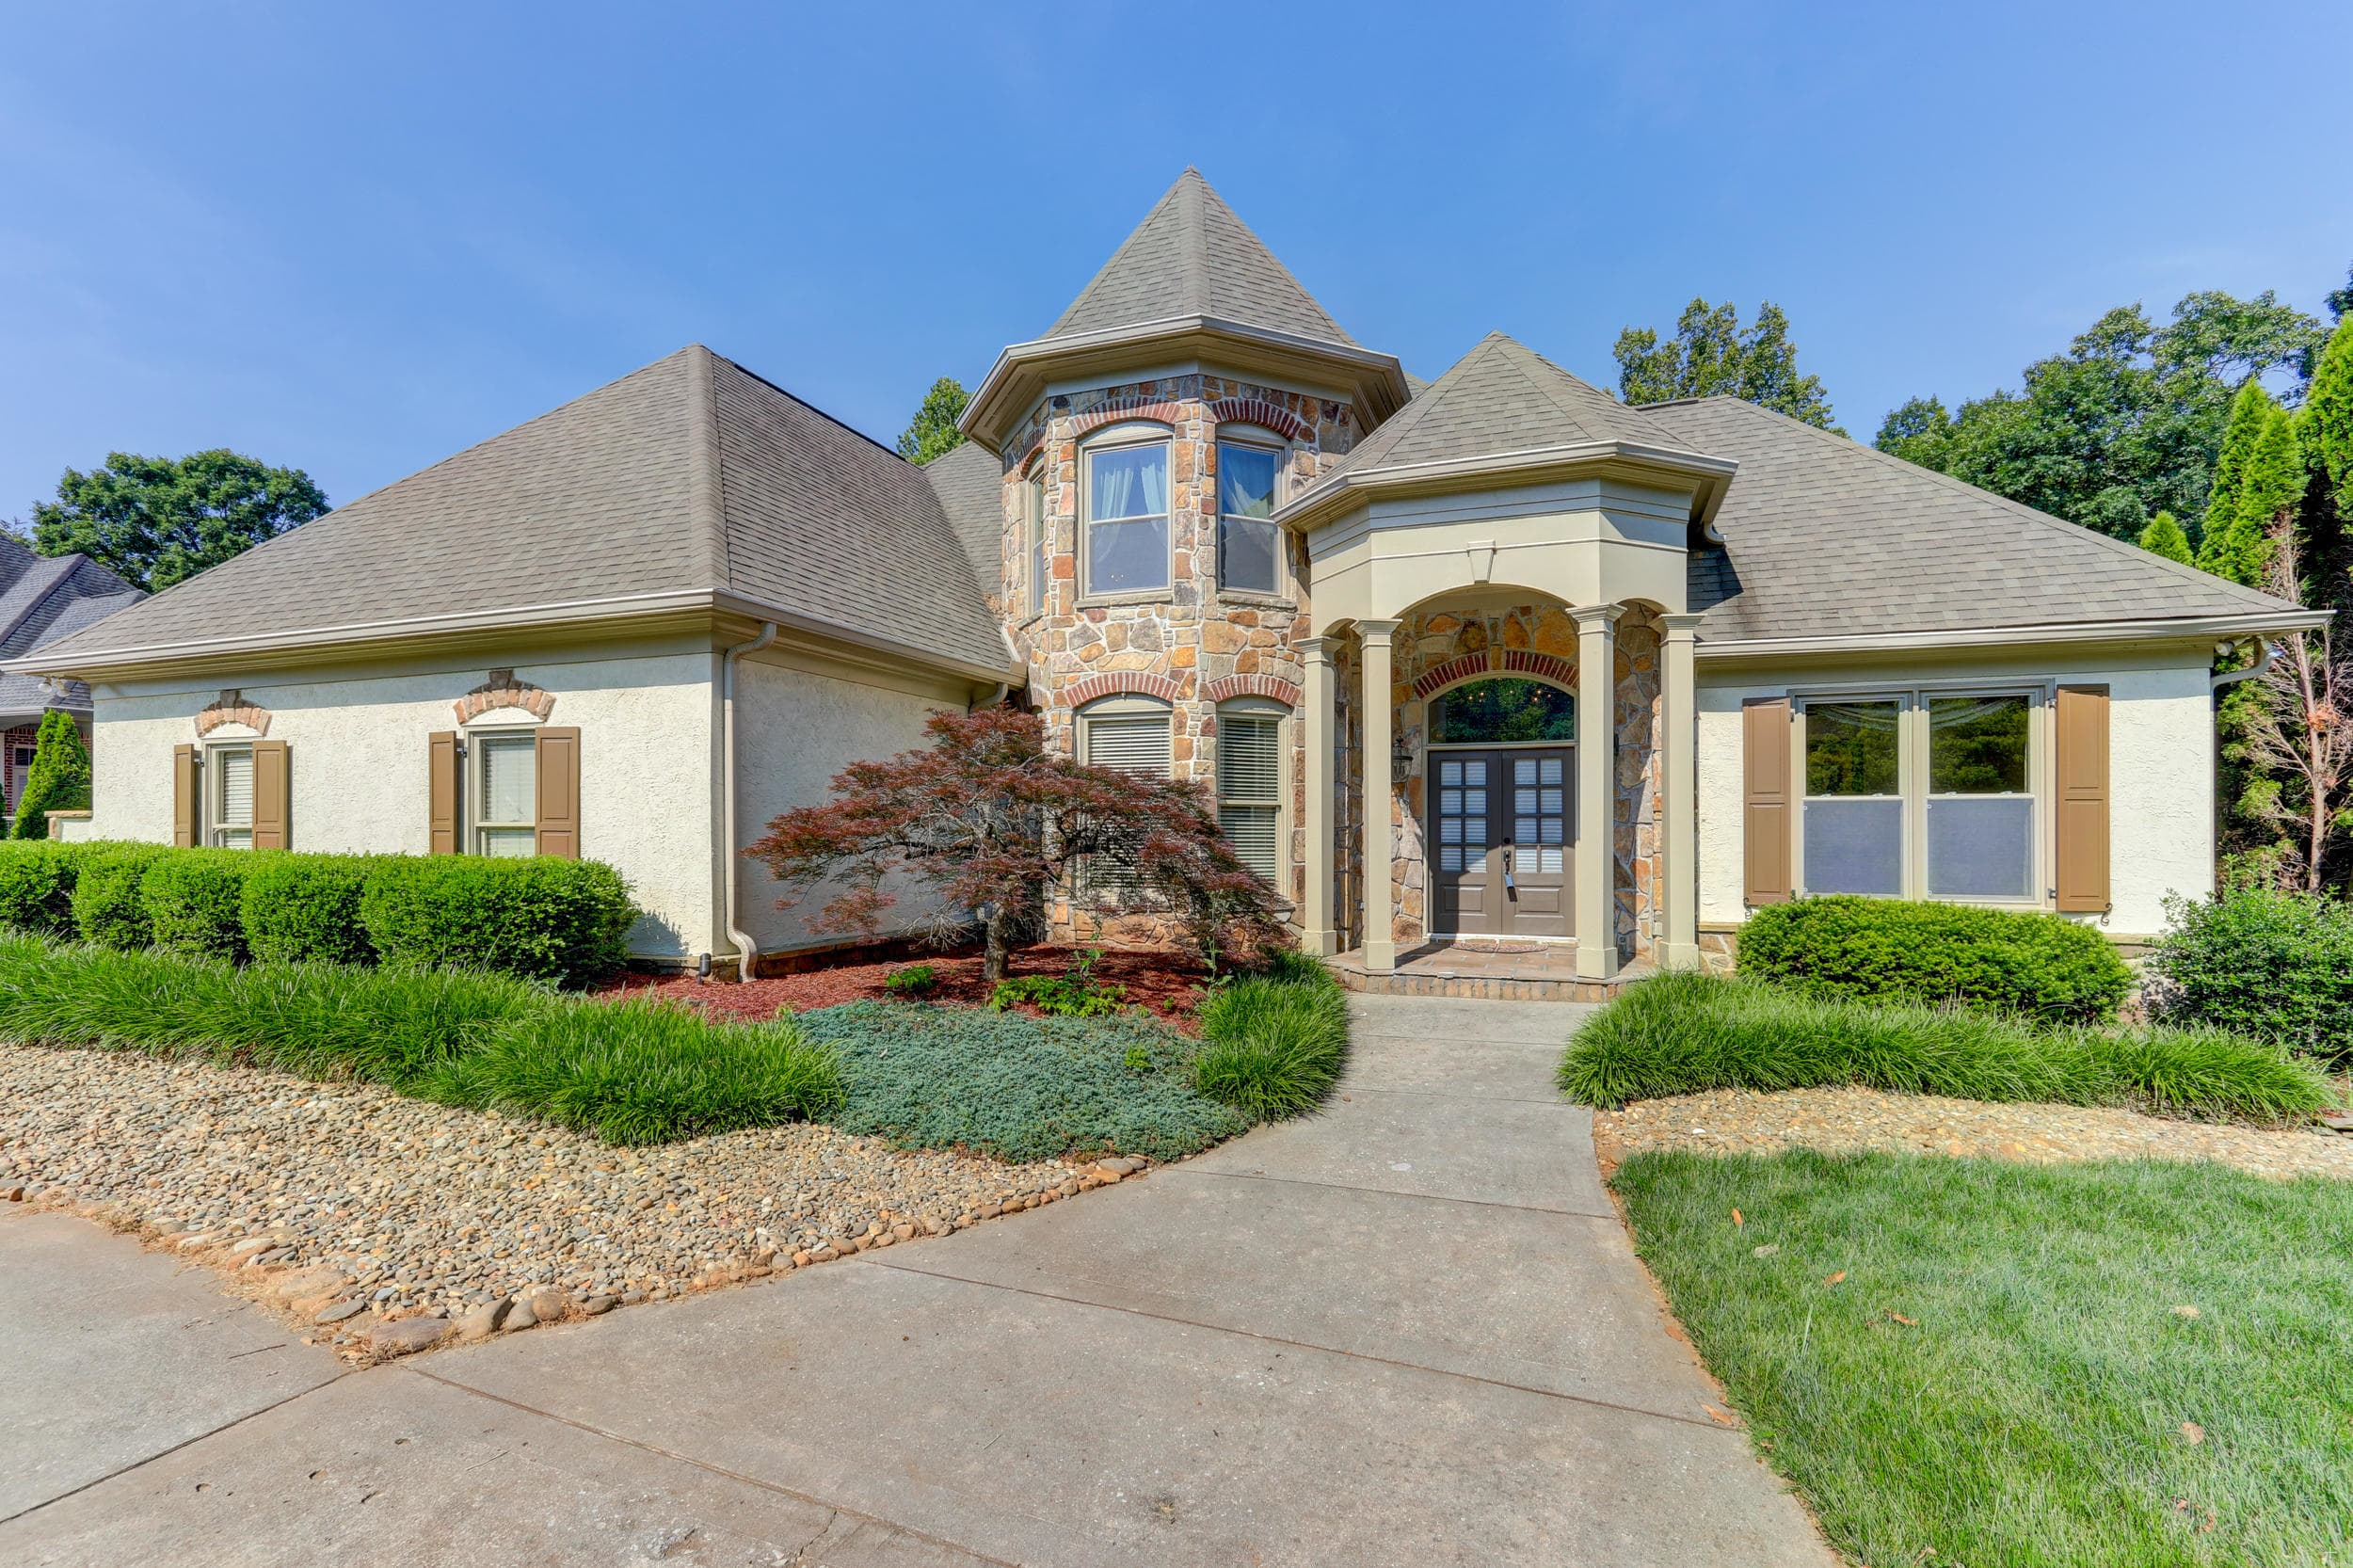 Global Luxury Spotlight – 7046 Duncans Glen Drive Knoxville, TN